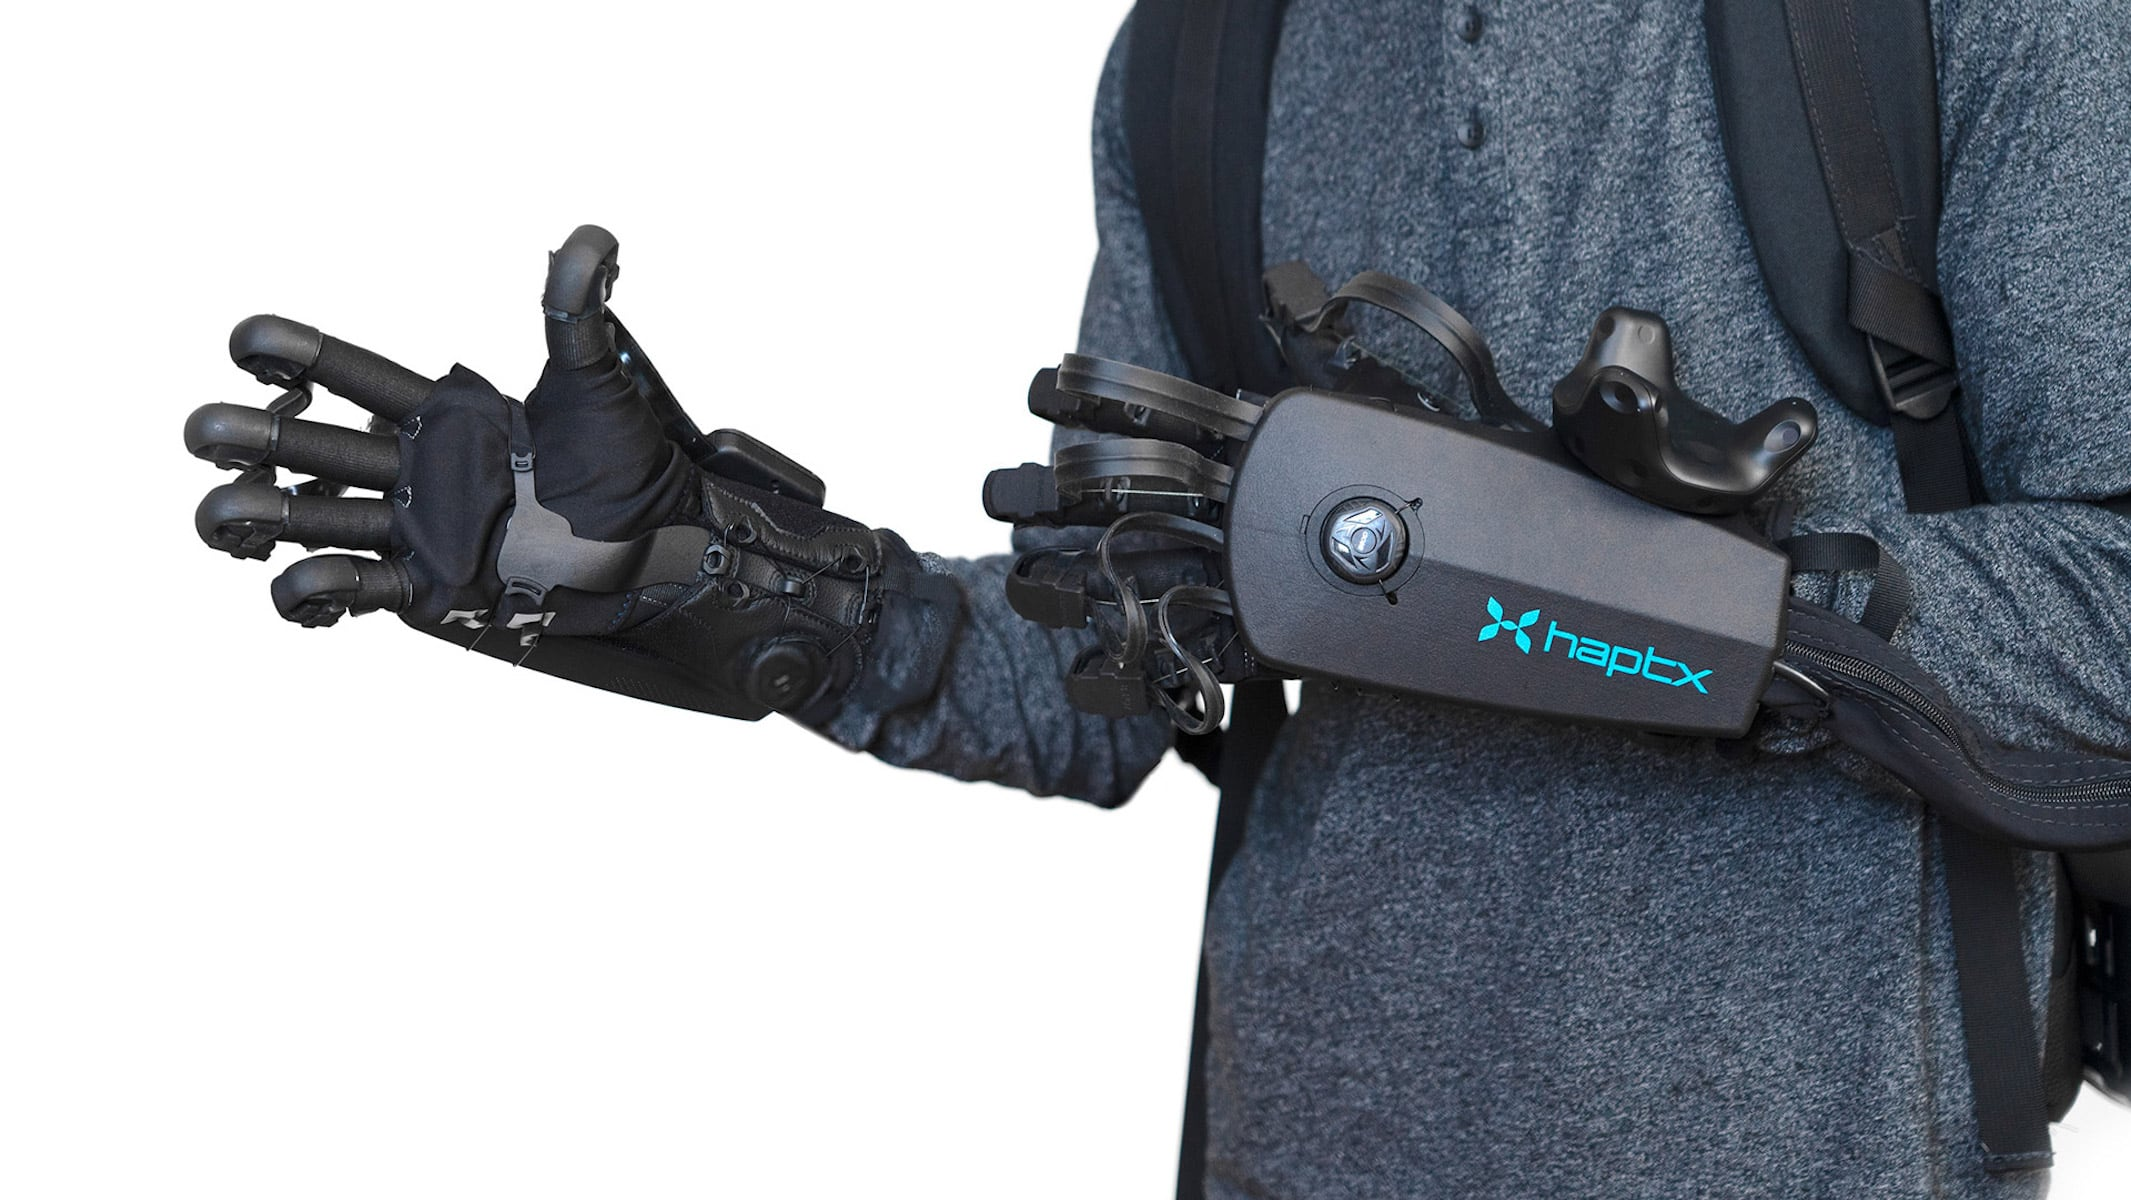 HaptX Launches new and improved DK2 Haptic VR Gloves